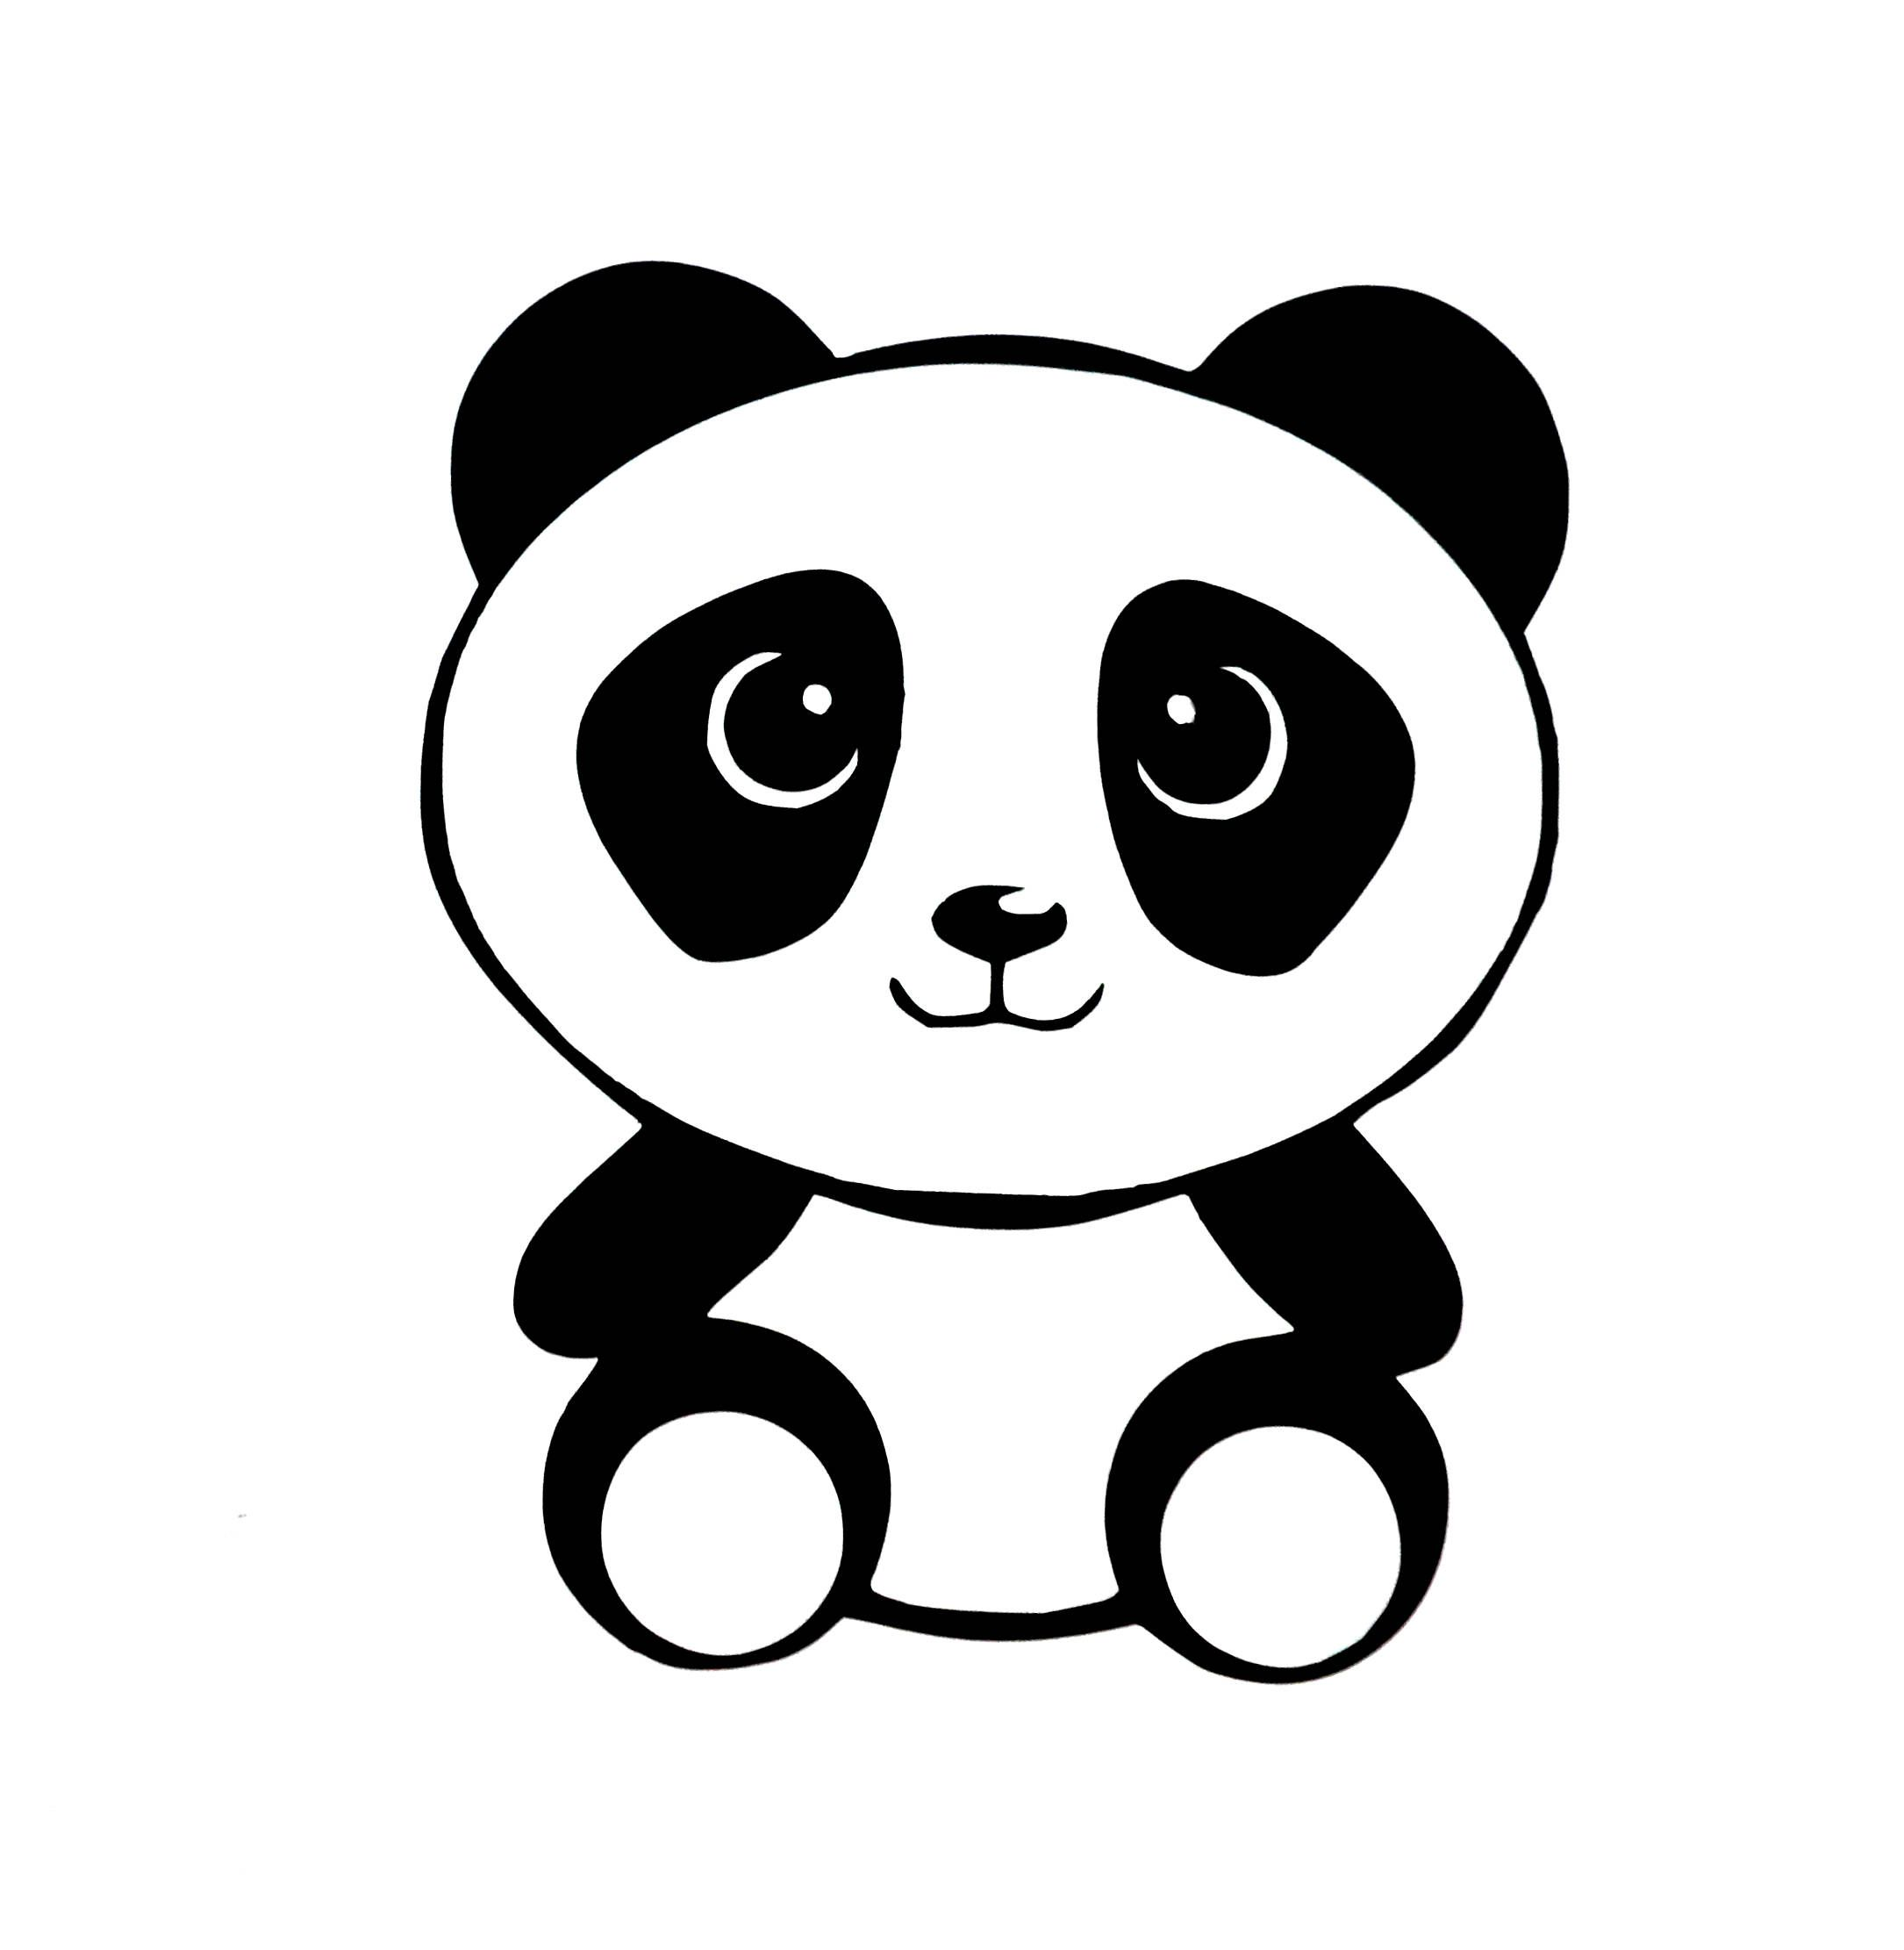 Baby panda window decal panda bear computer laptop sticker decal panda car decal cute panda sticker panda decal animal sticker